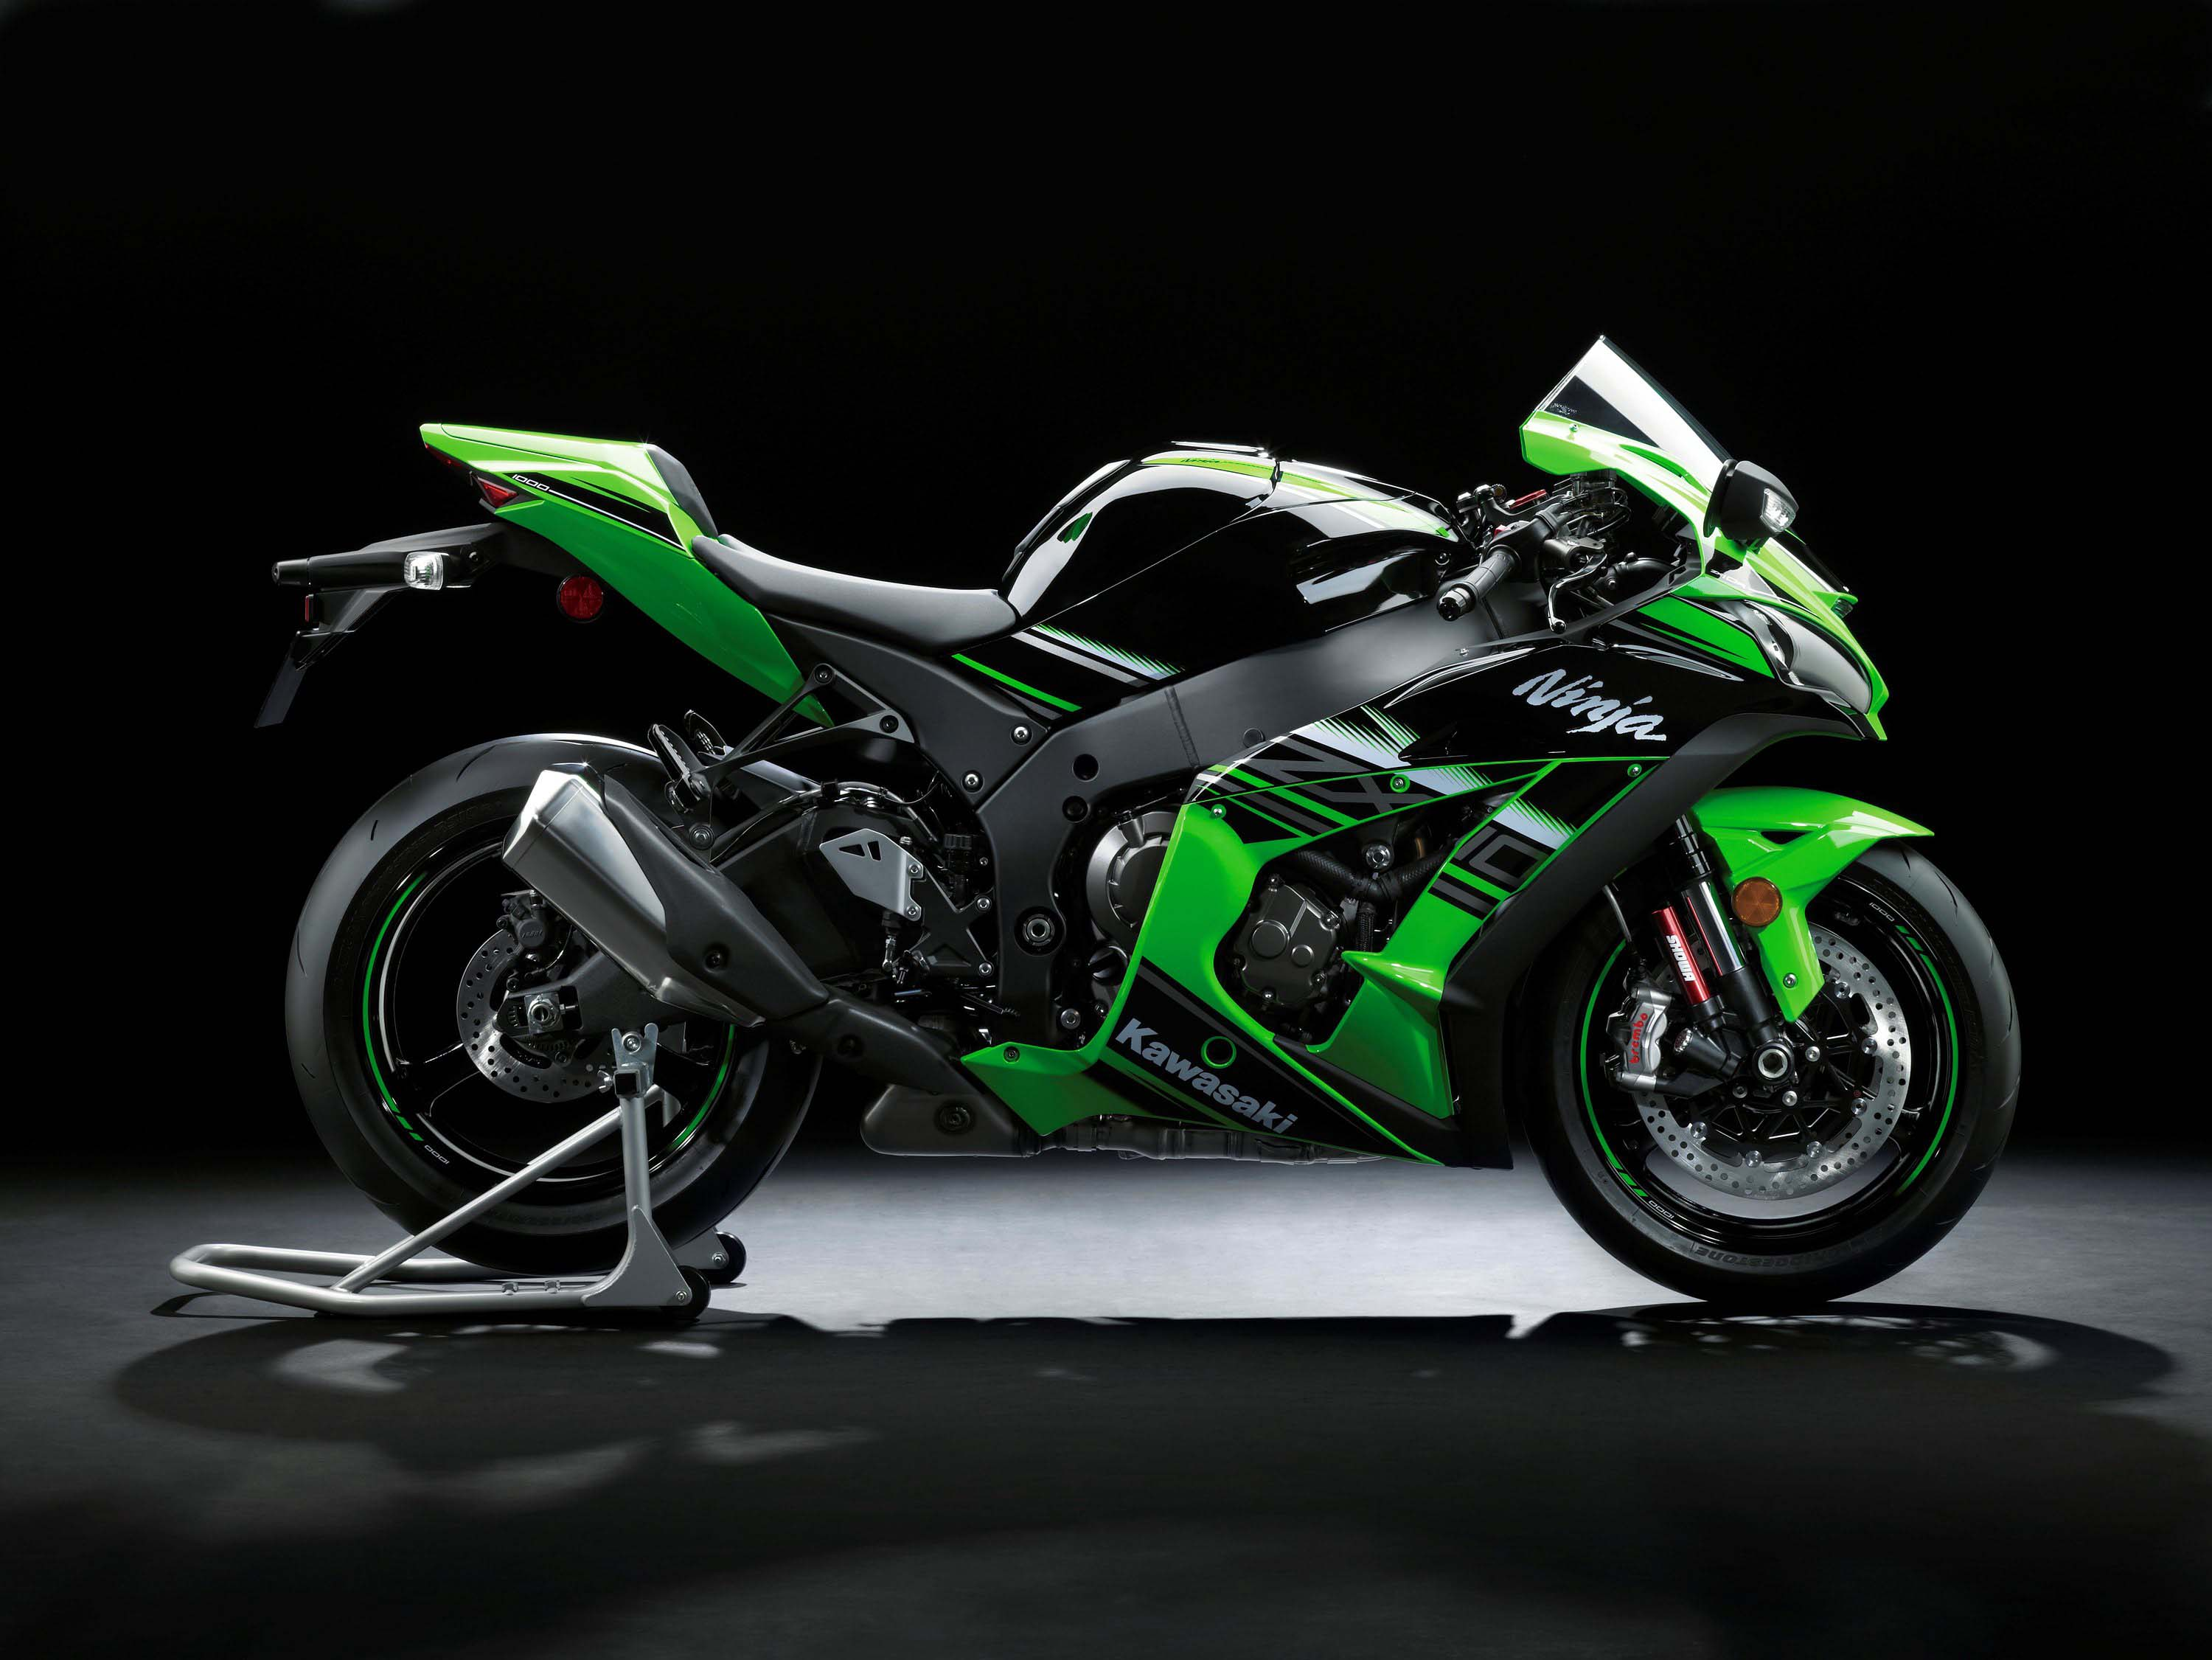 here's a walk-around of the 2016 kawasaki ninja zx-10r